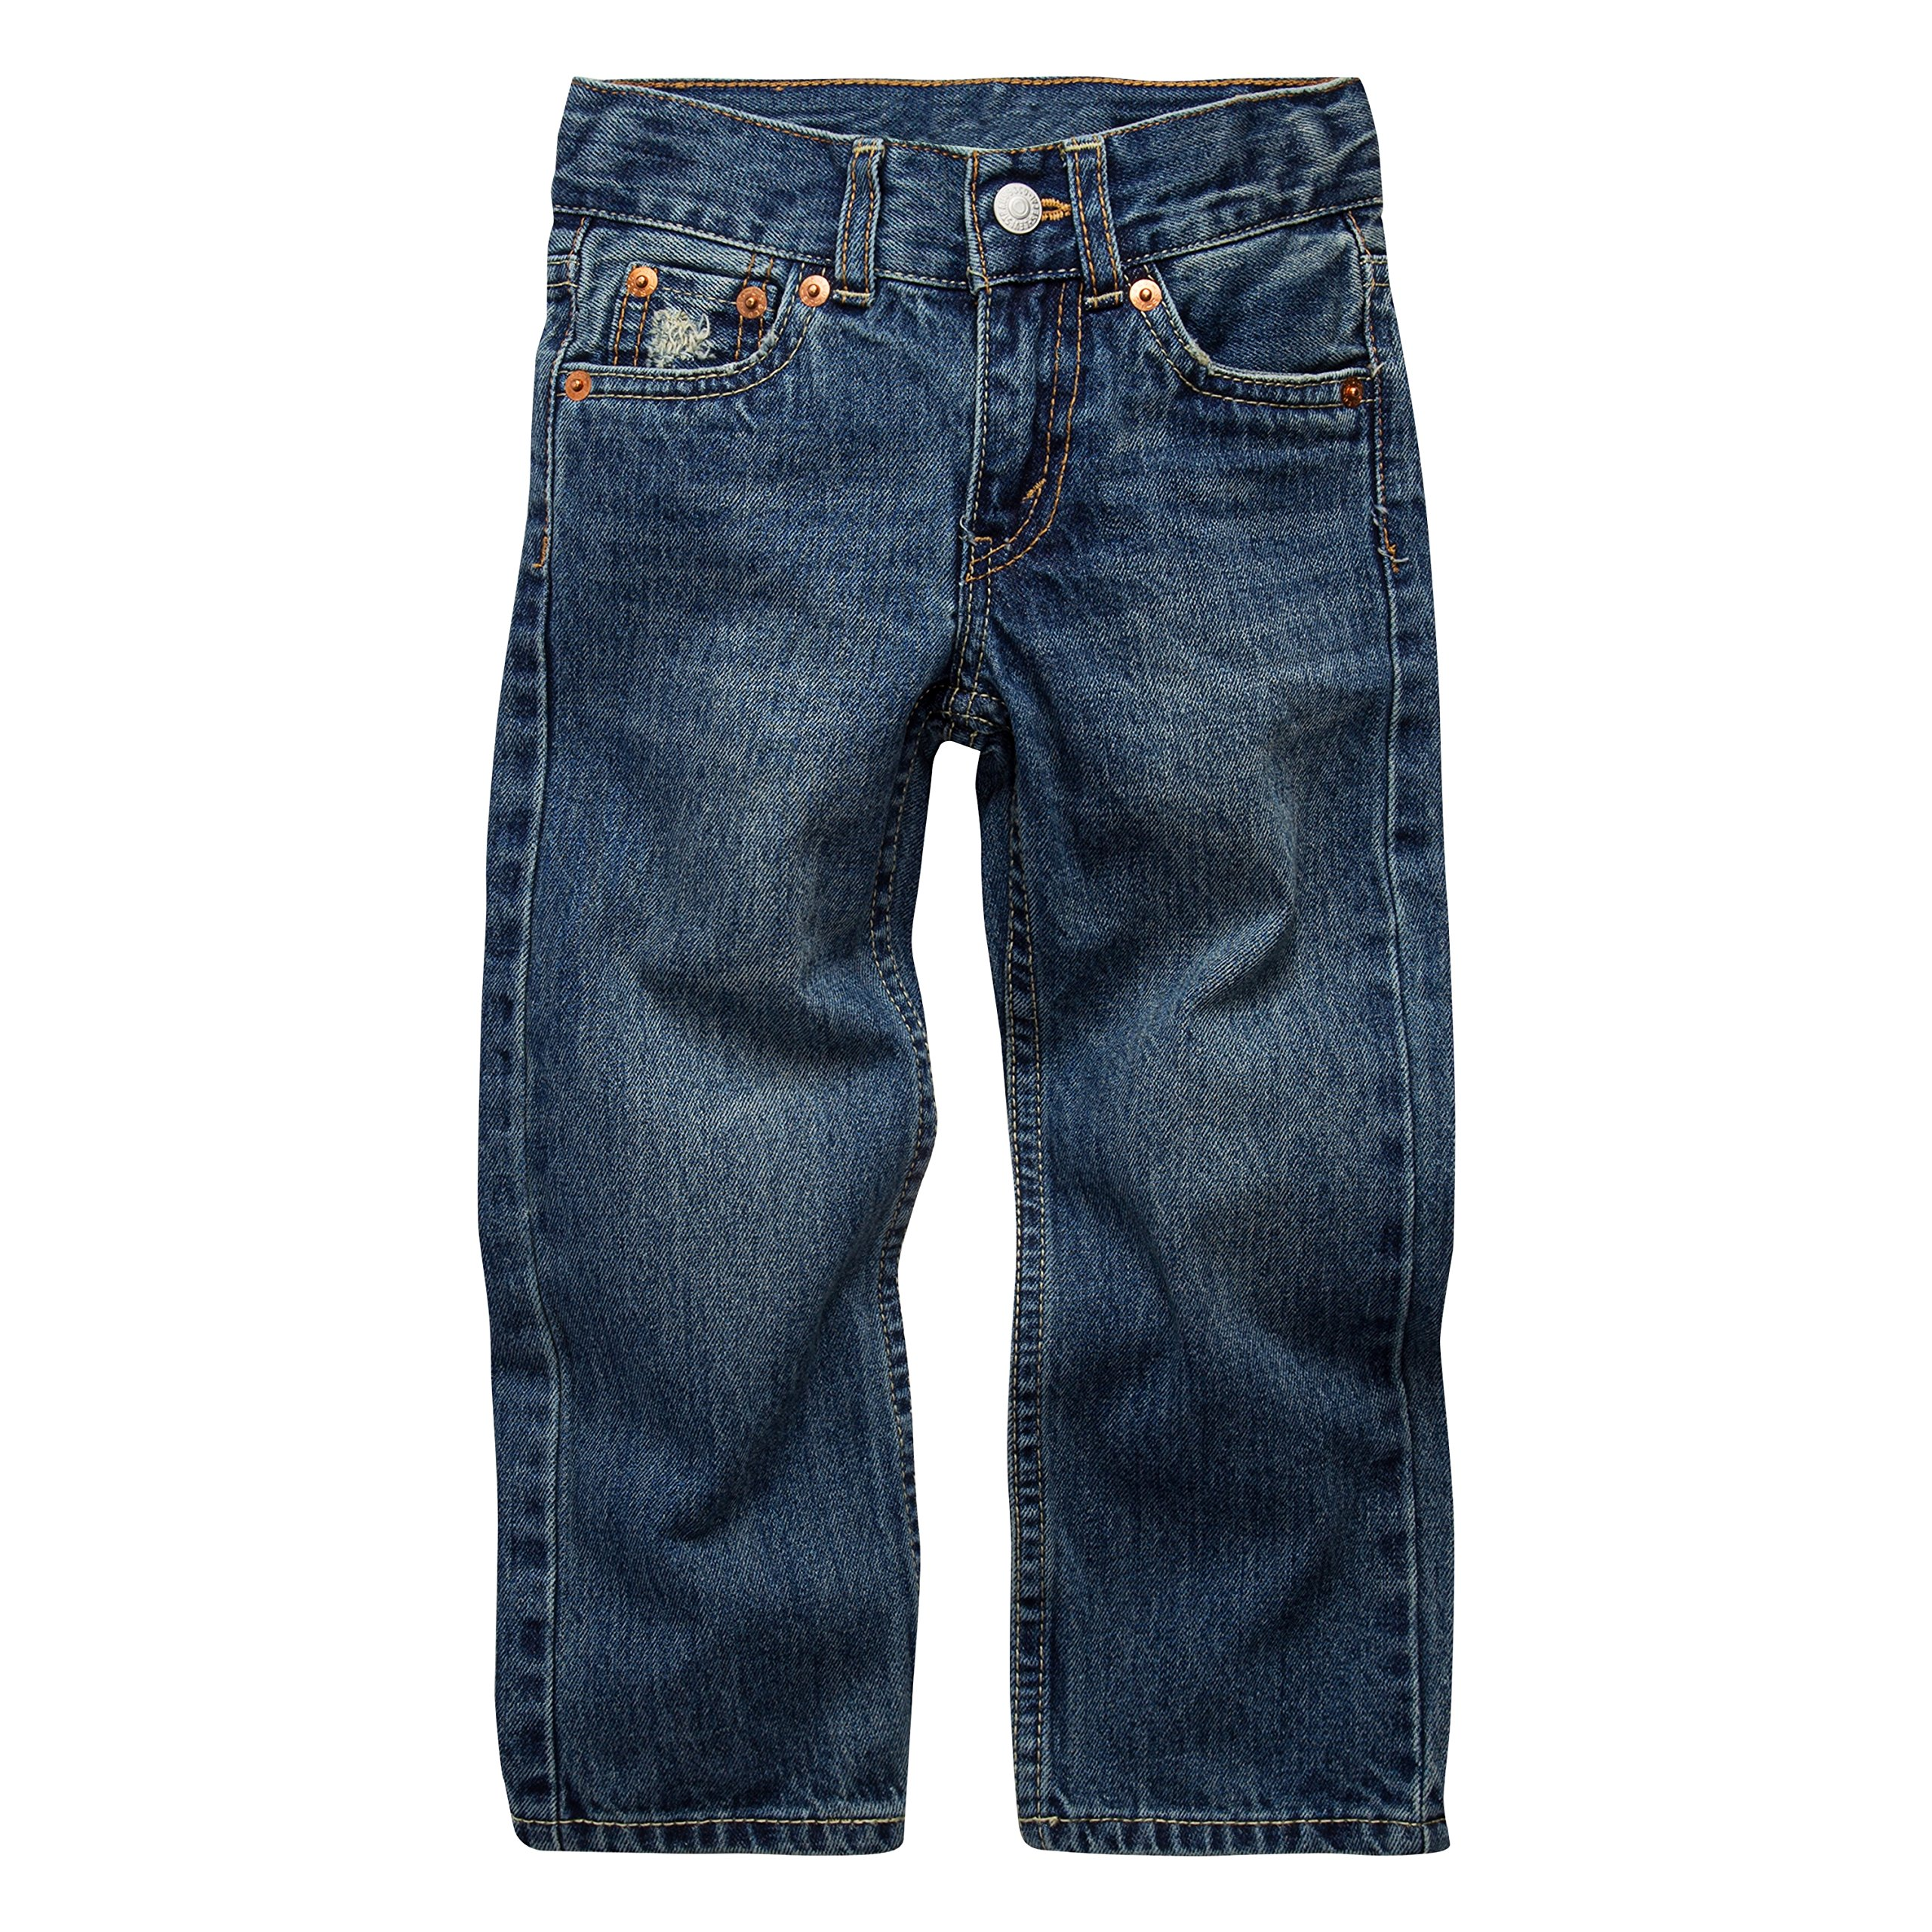 bfa6d242 Best Rated in Boys' Jeans & Helpful Customer Reviews - Amazon.com